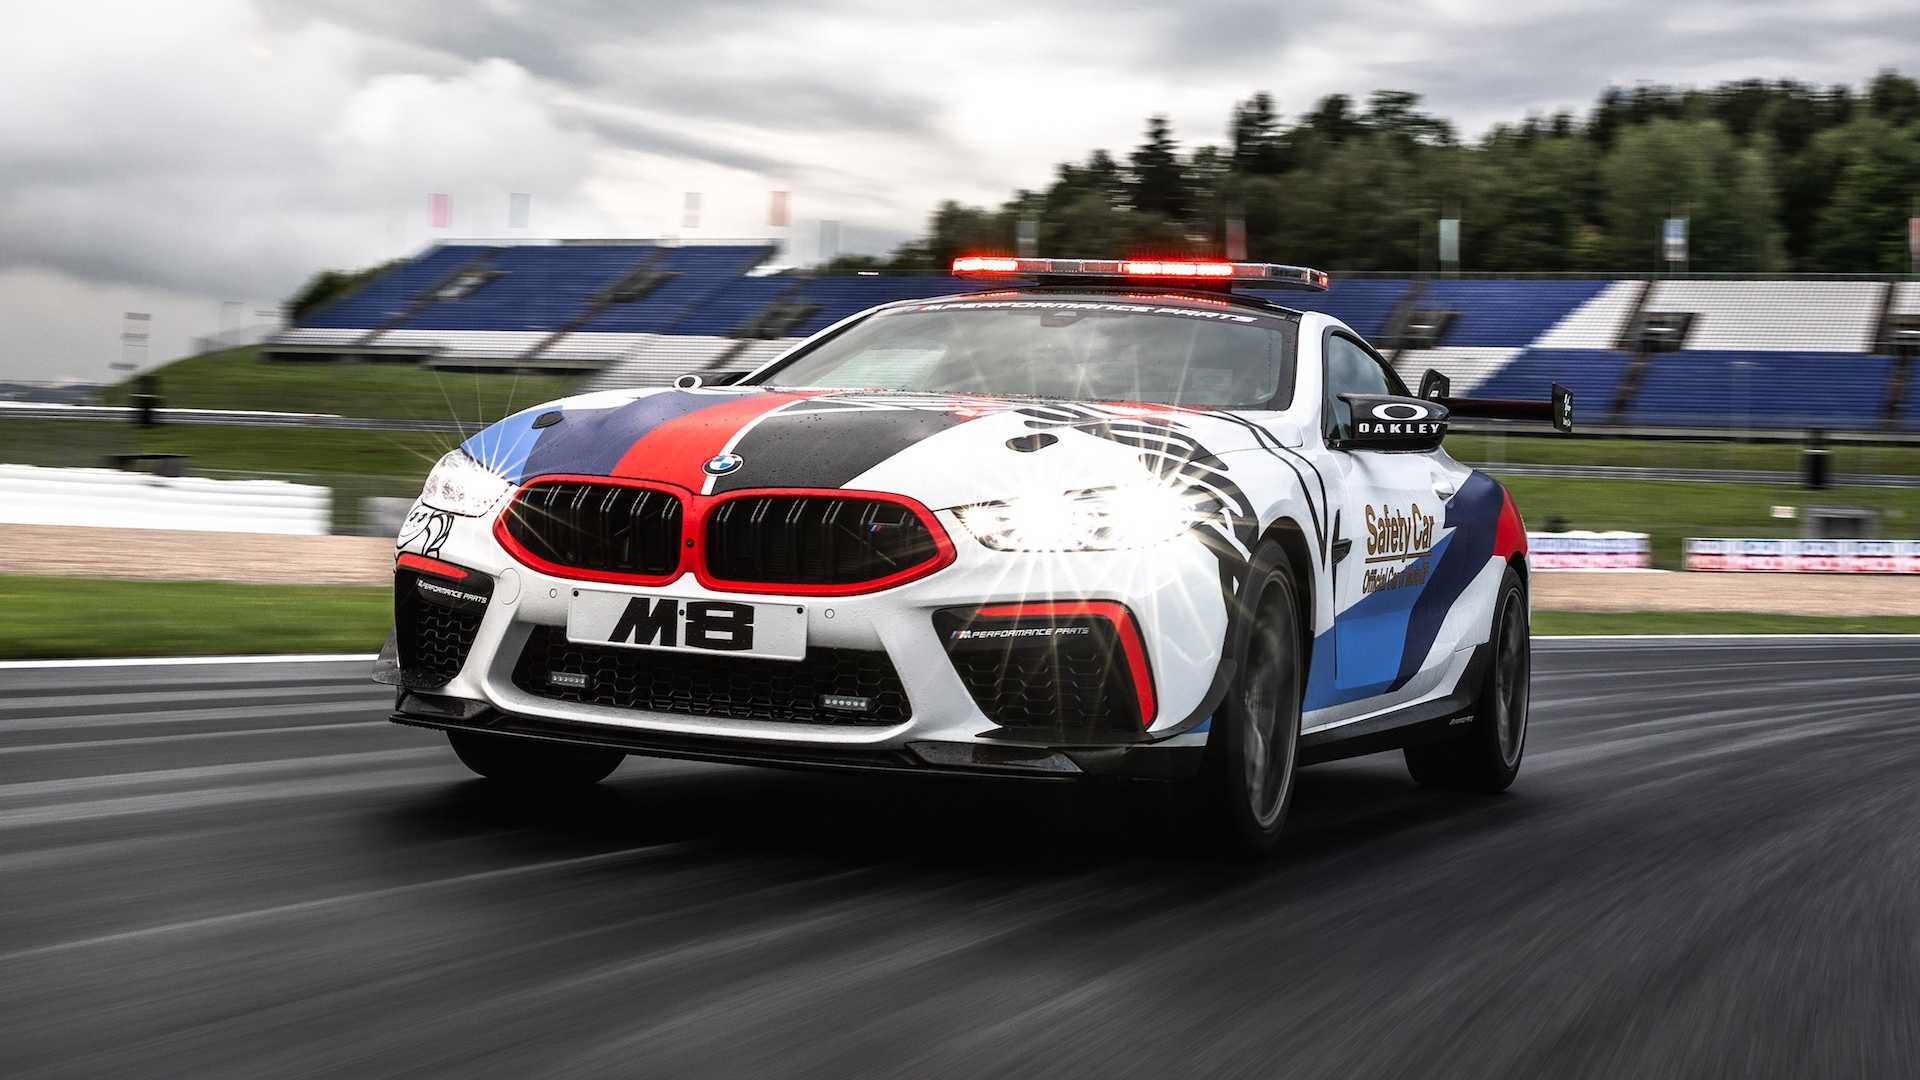 bmw-m8-motogp-safety-car-1.jpg